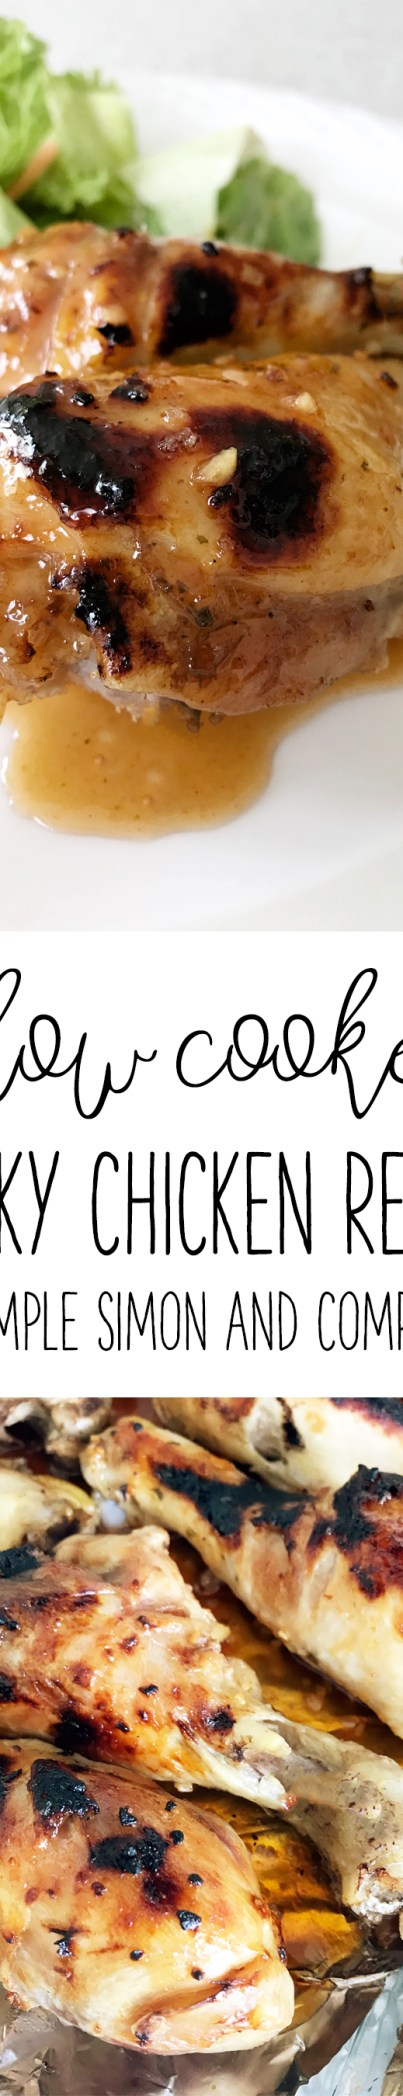 Slow Cooker Sticky Chicken Recipe